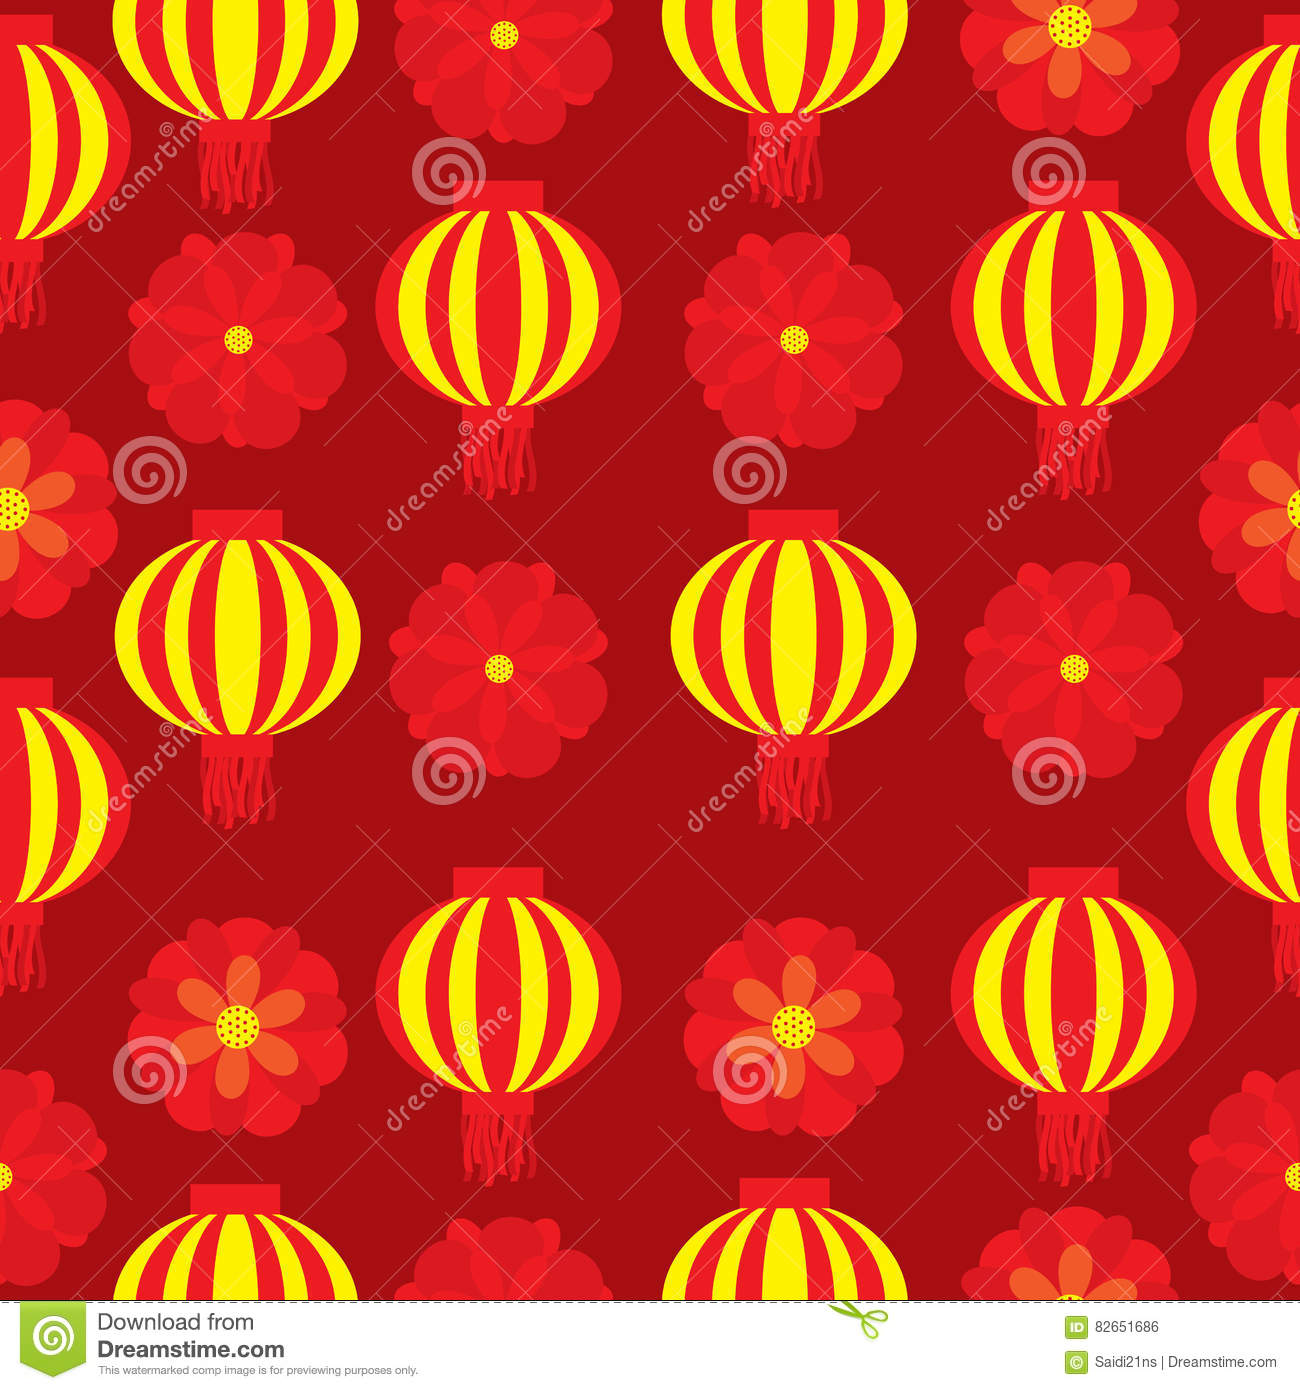 Seamless Background Of Chinese New Year Illustration With Red Flower And Lampion Lamp On